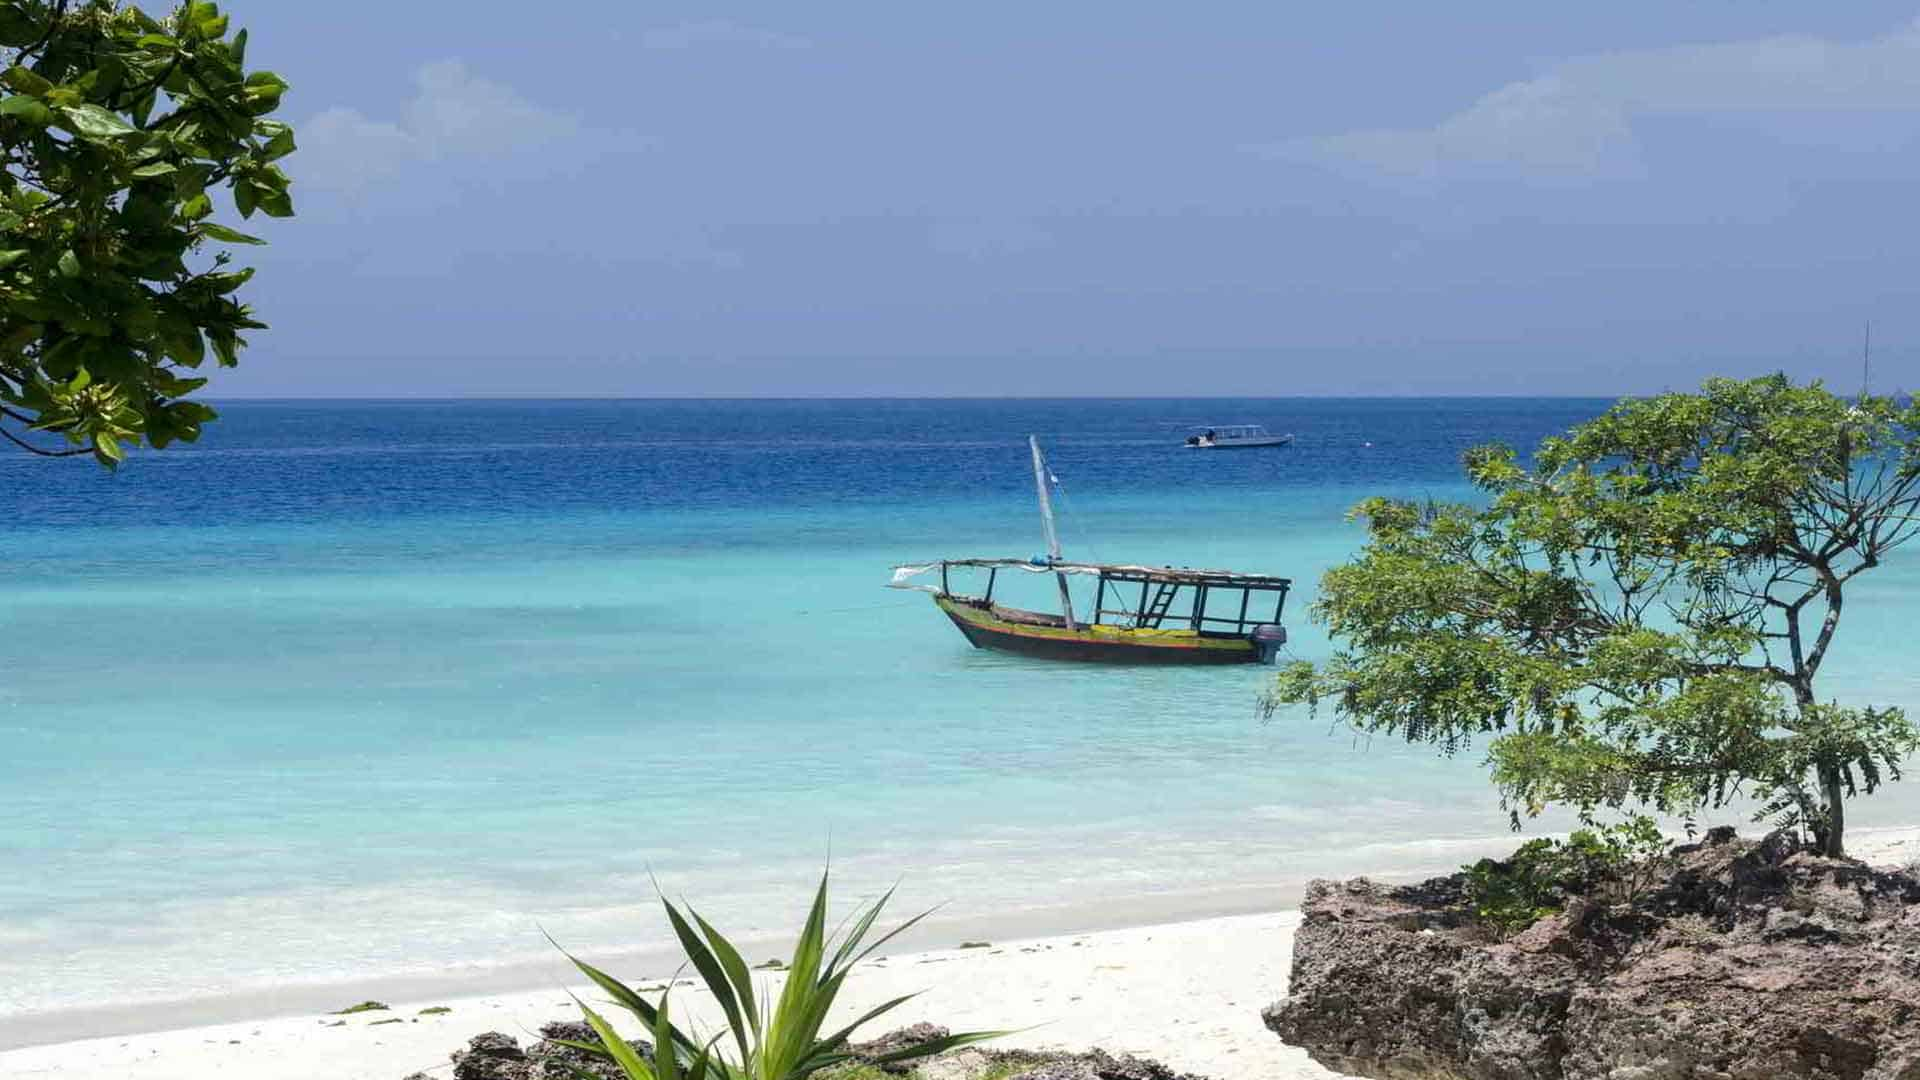 safari then zanzibar beach holiday